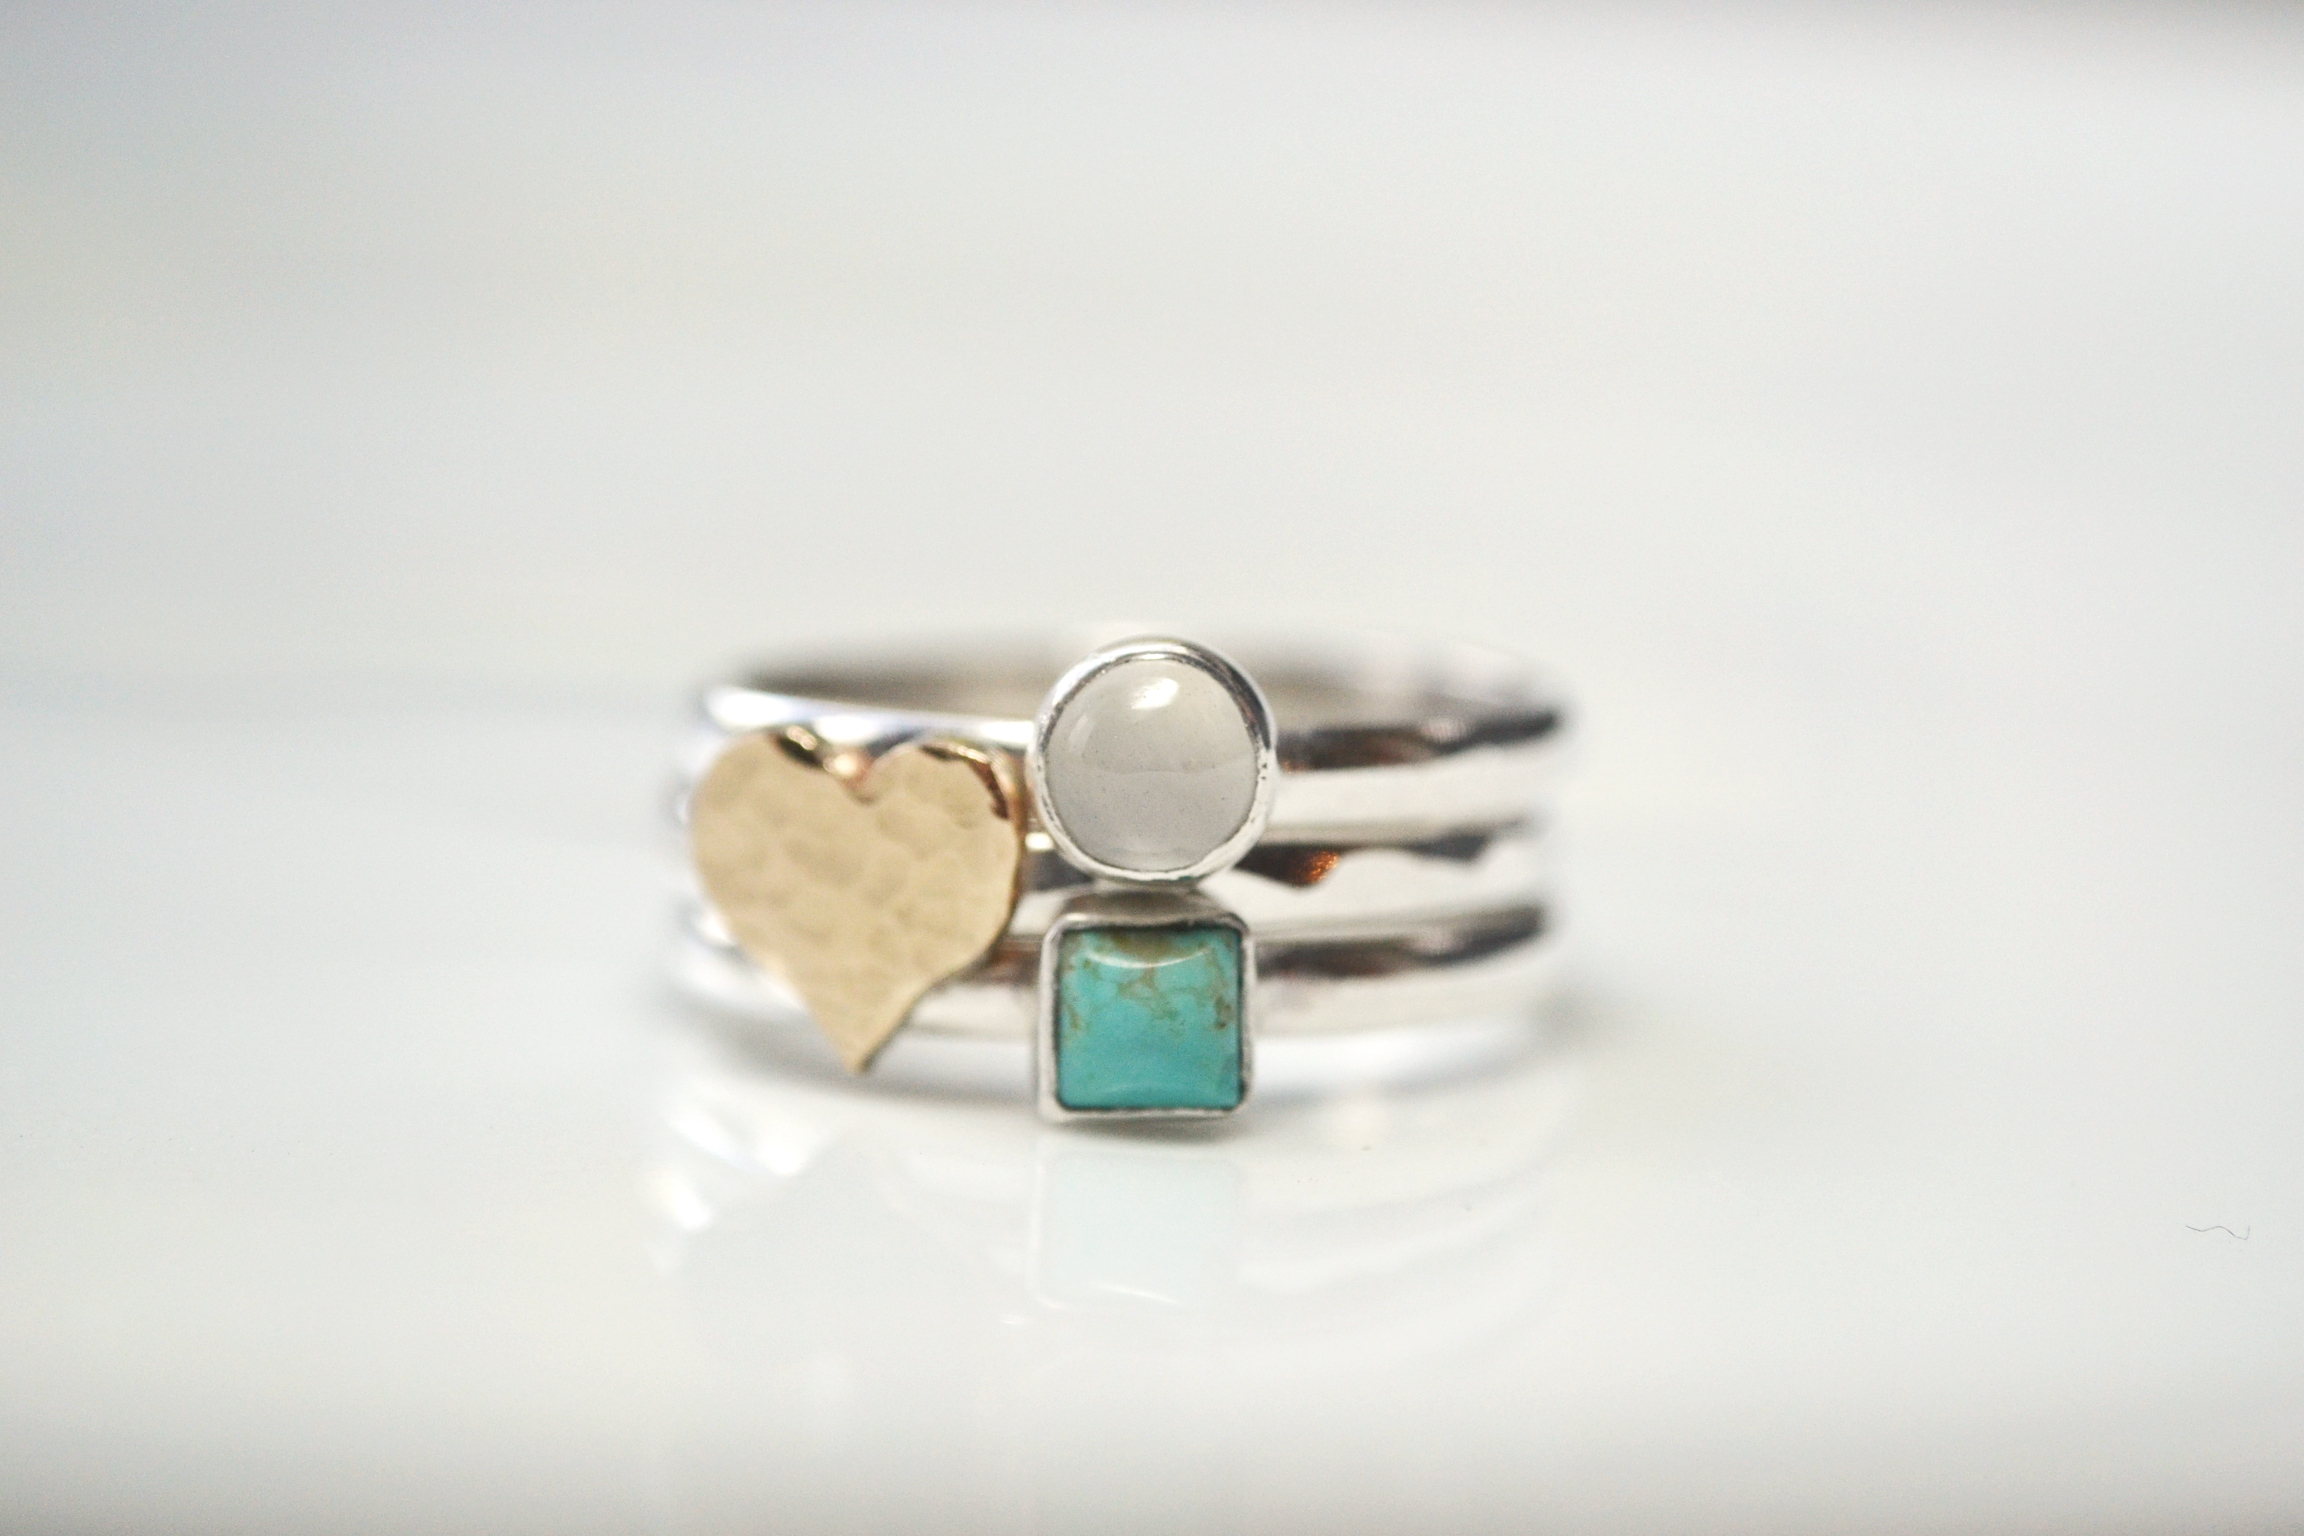 Gold heart with a 5mm moonstone and a 4mm turquoise square.